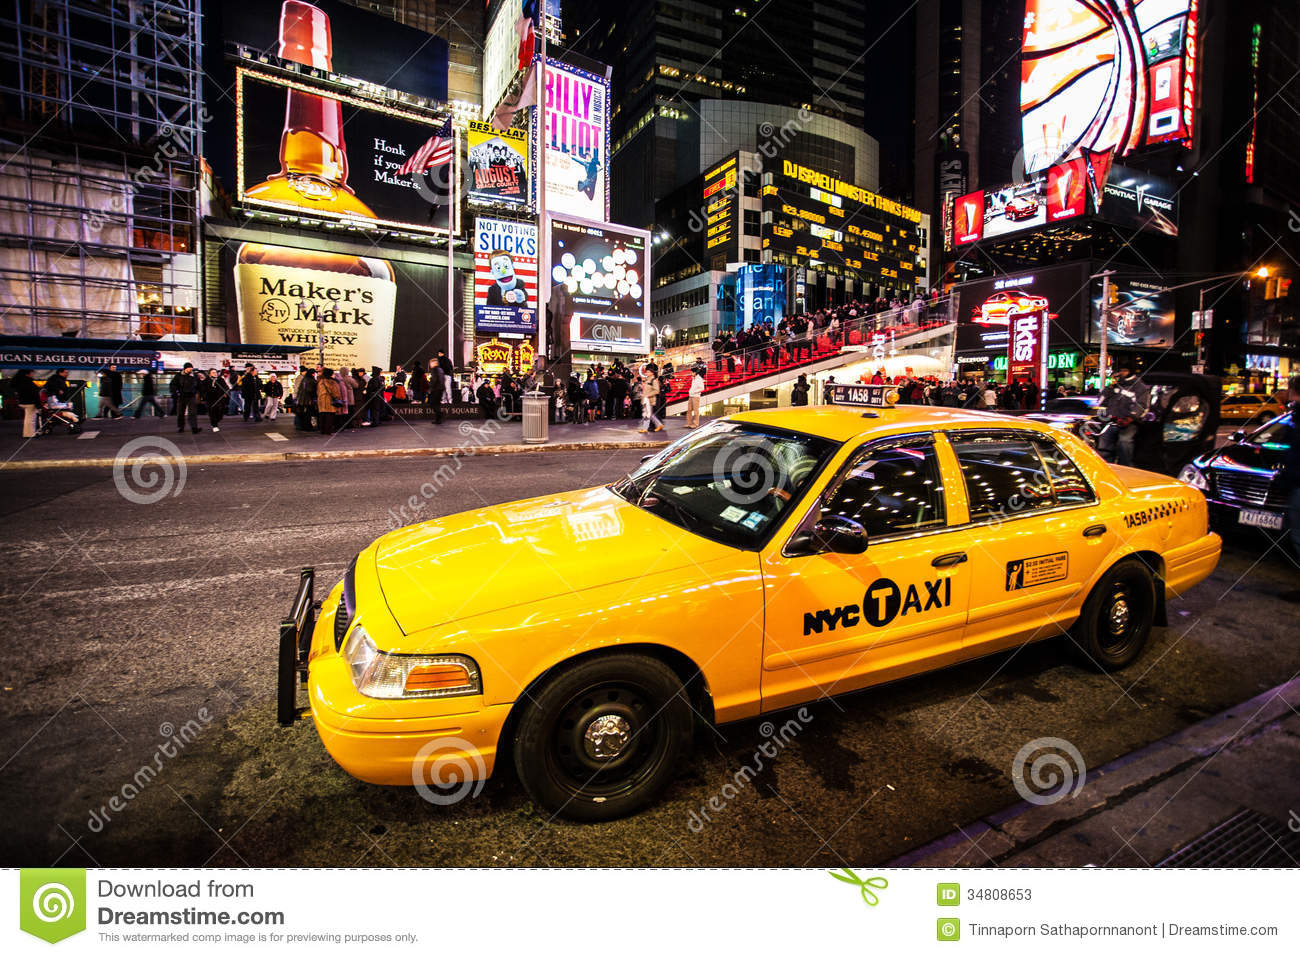 new york city taxi times square editorial stock photo image 34808653. Black Bedroom Furniture Sets. Home Design Ideas